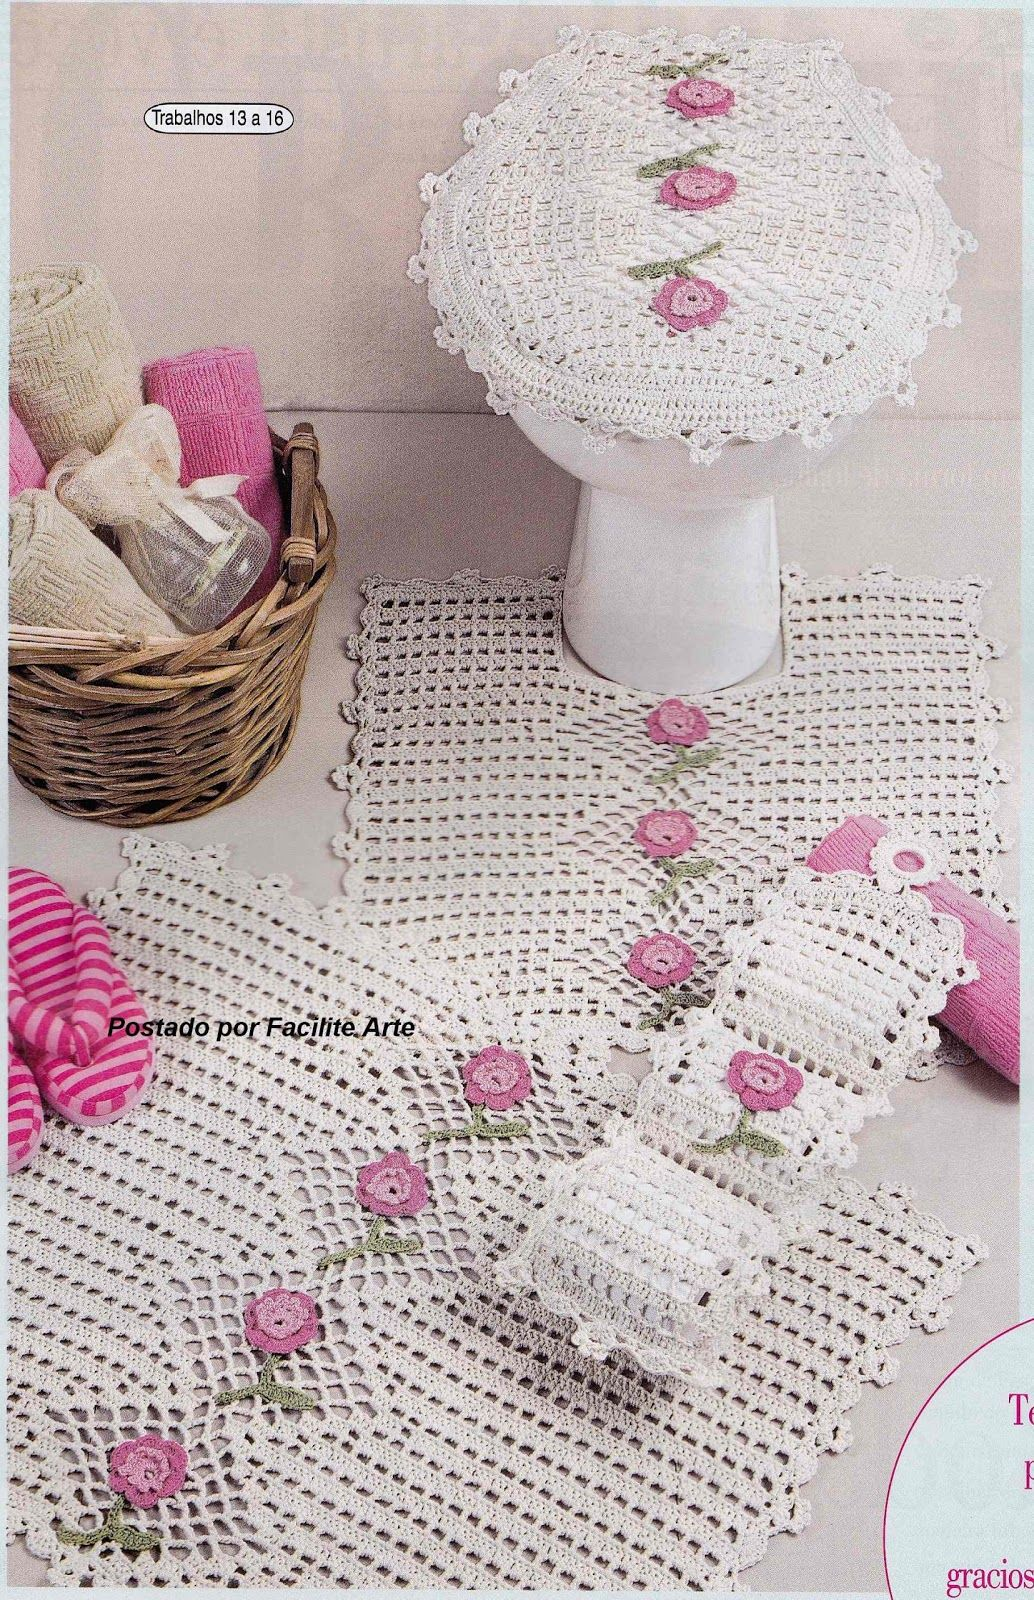 Knit crochet fashionable tablecloth for home. Detailed diagram with description and photo